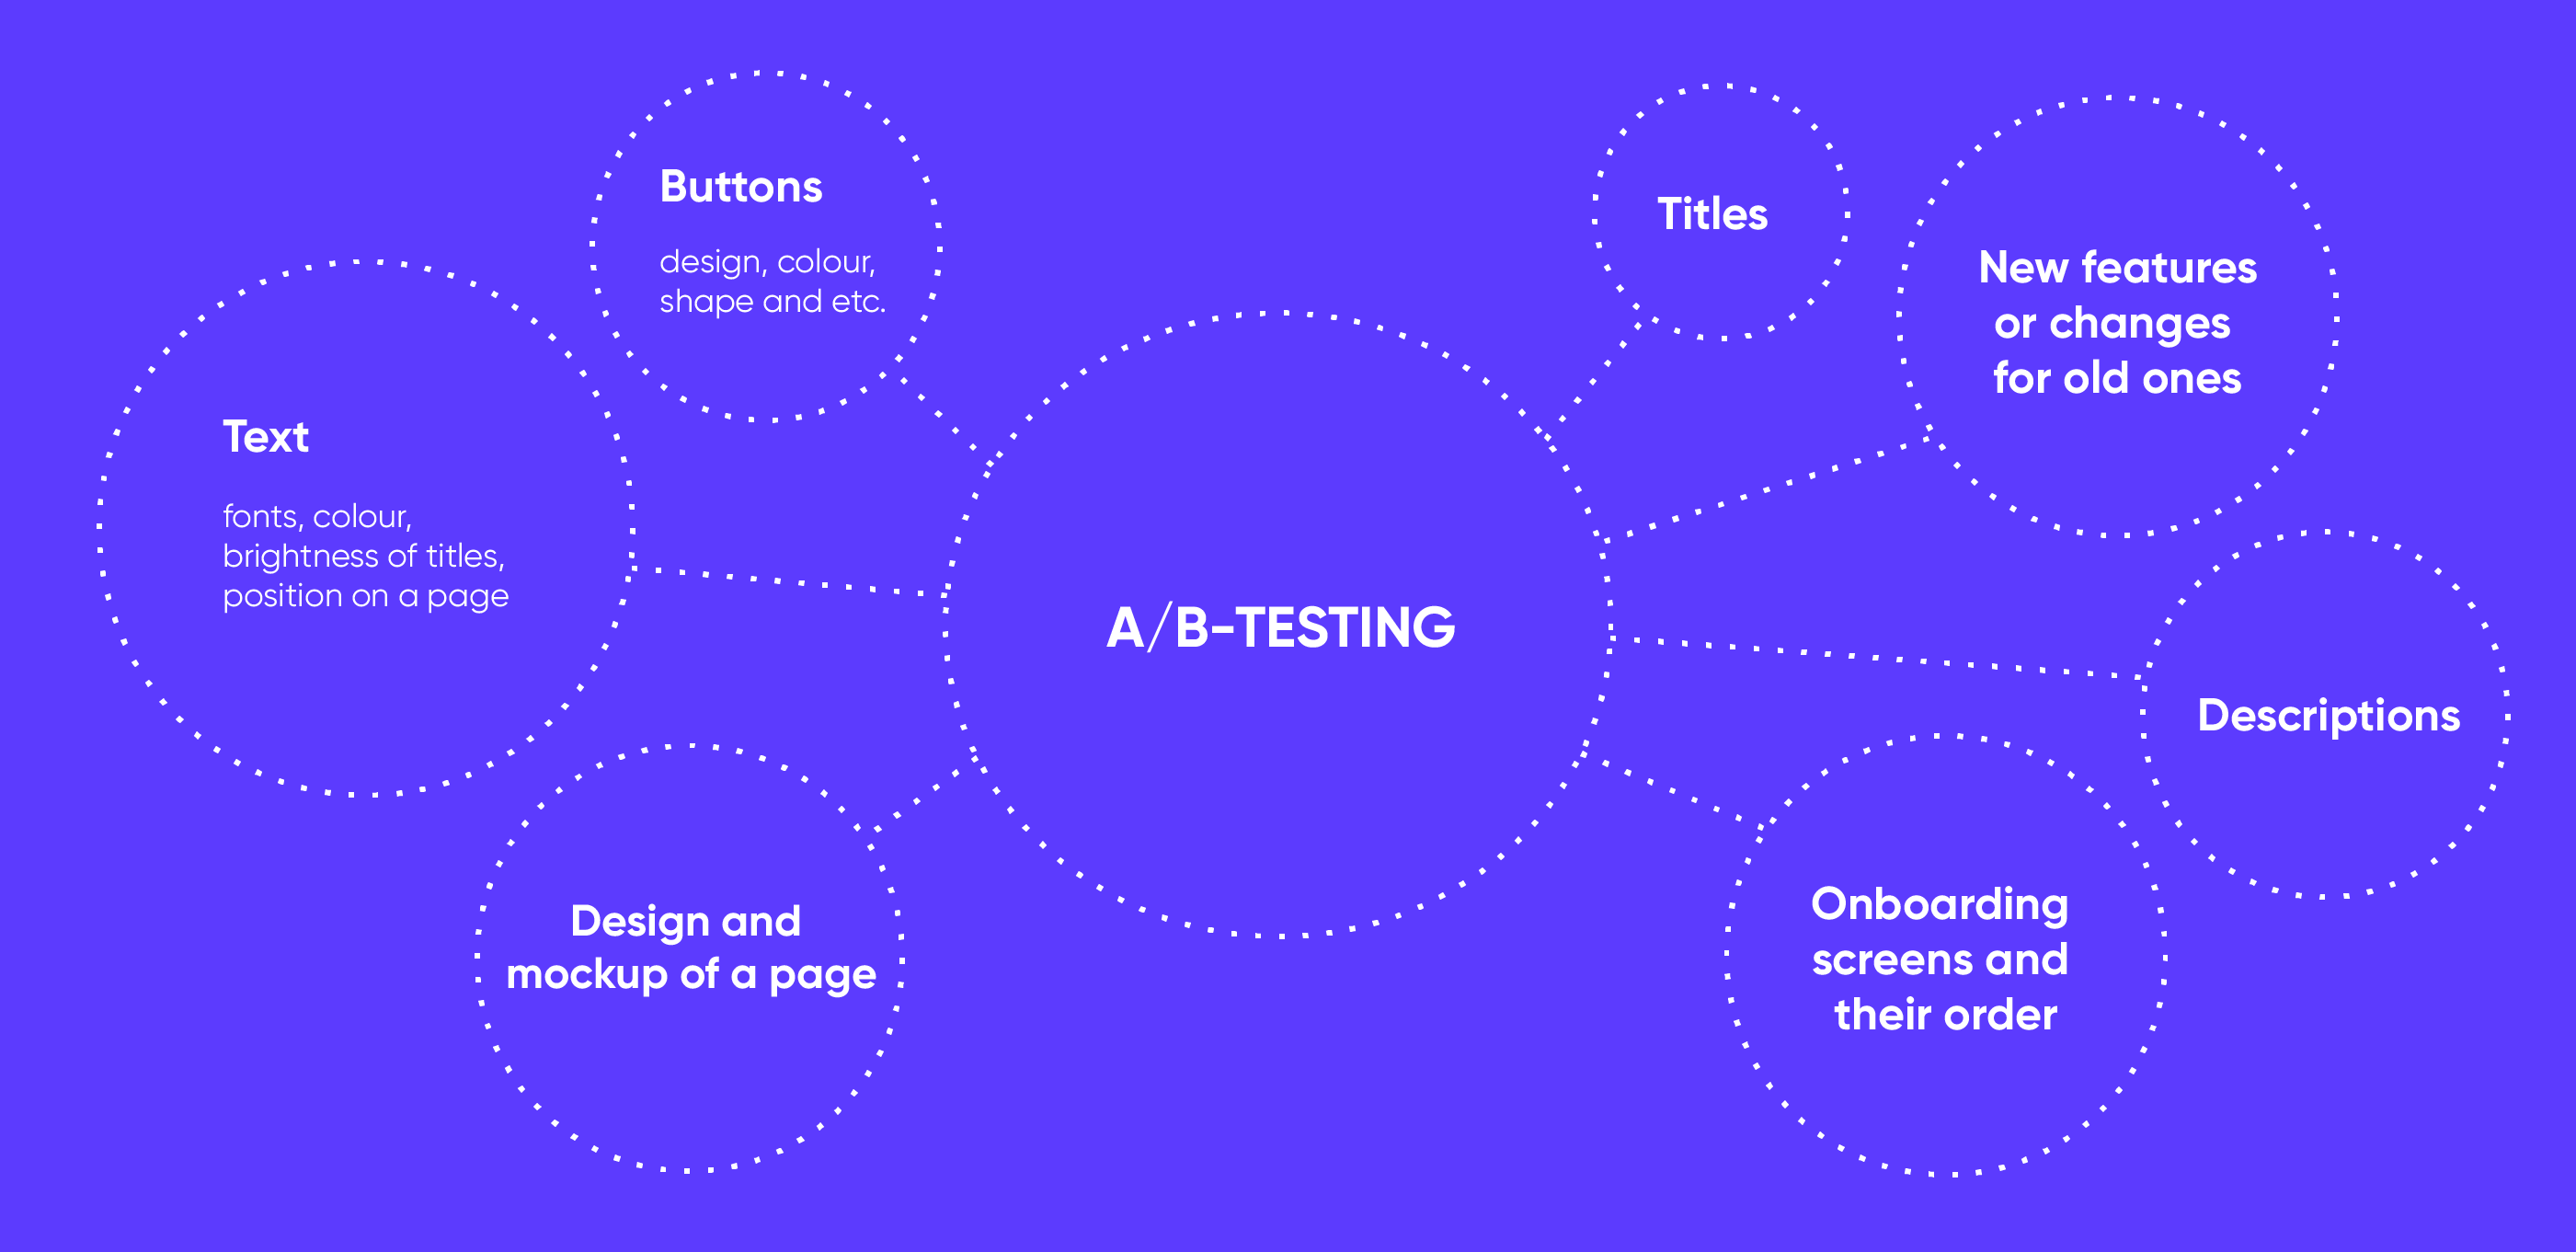 MVP and A/B testing: why is it a good combination?